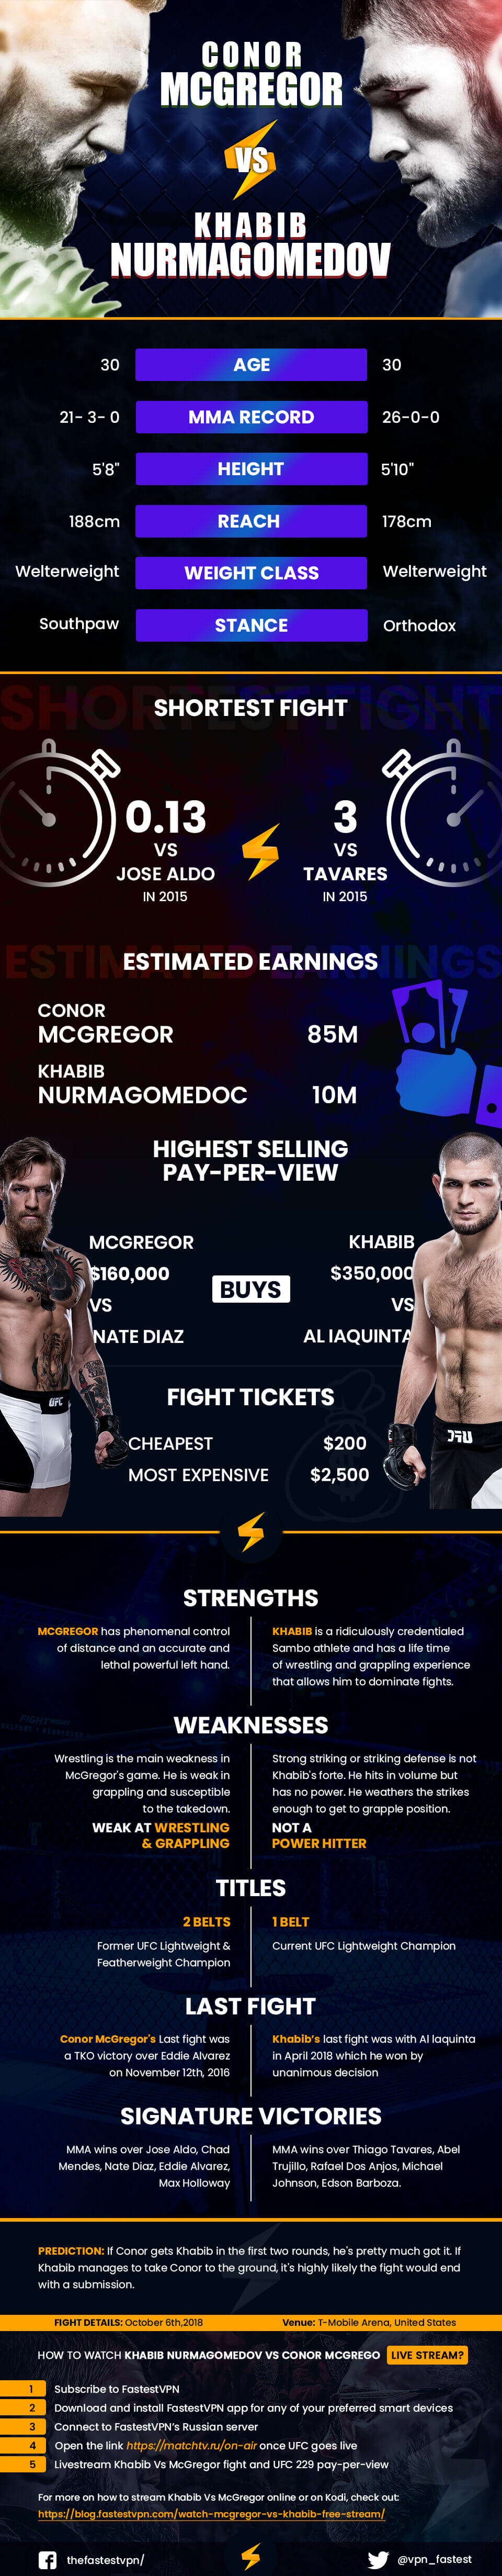 mcgregor vs khabib fight